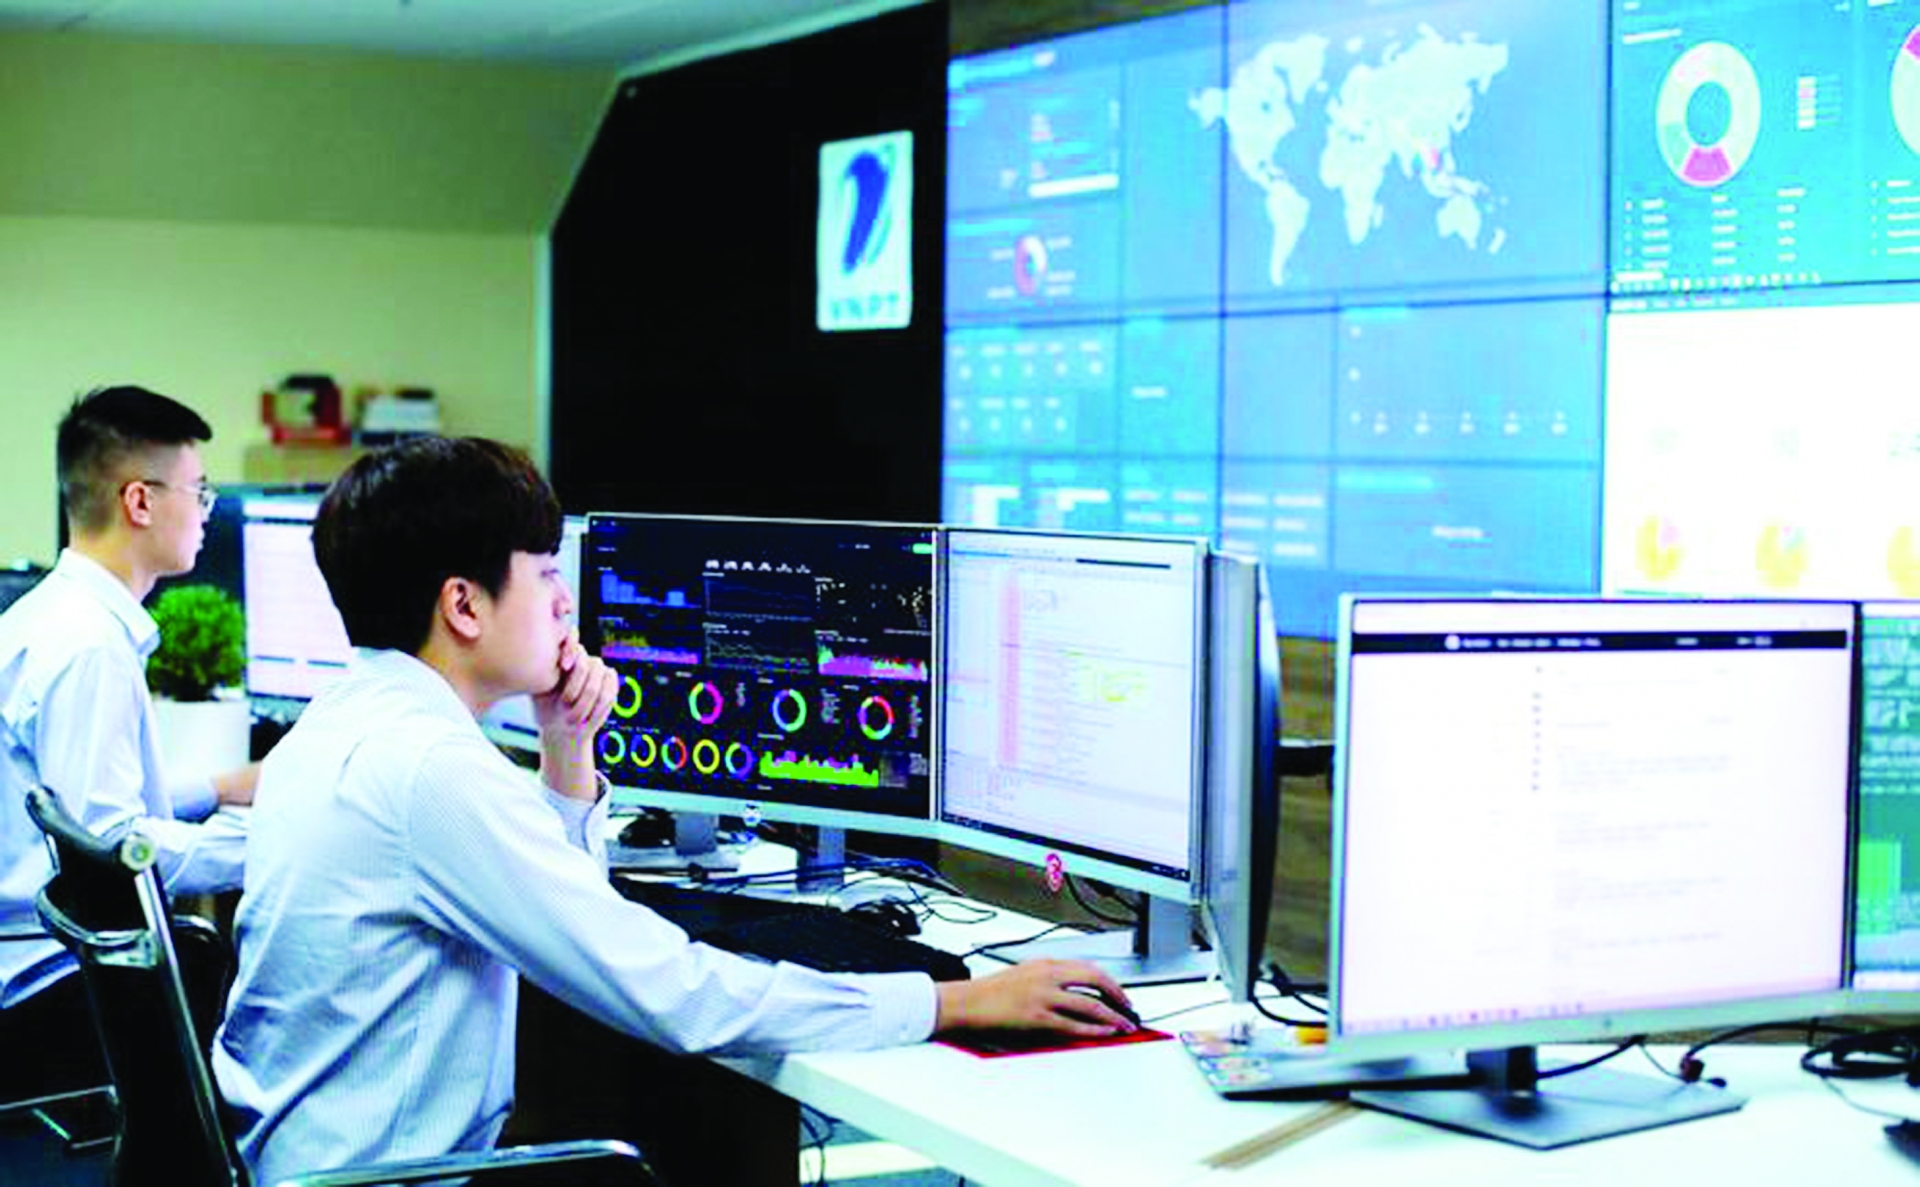 hanoi aims to become digital information leader